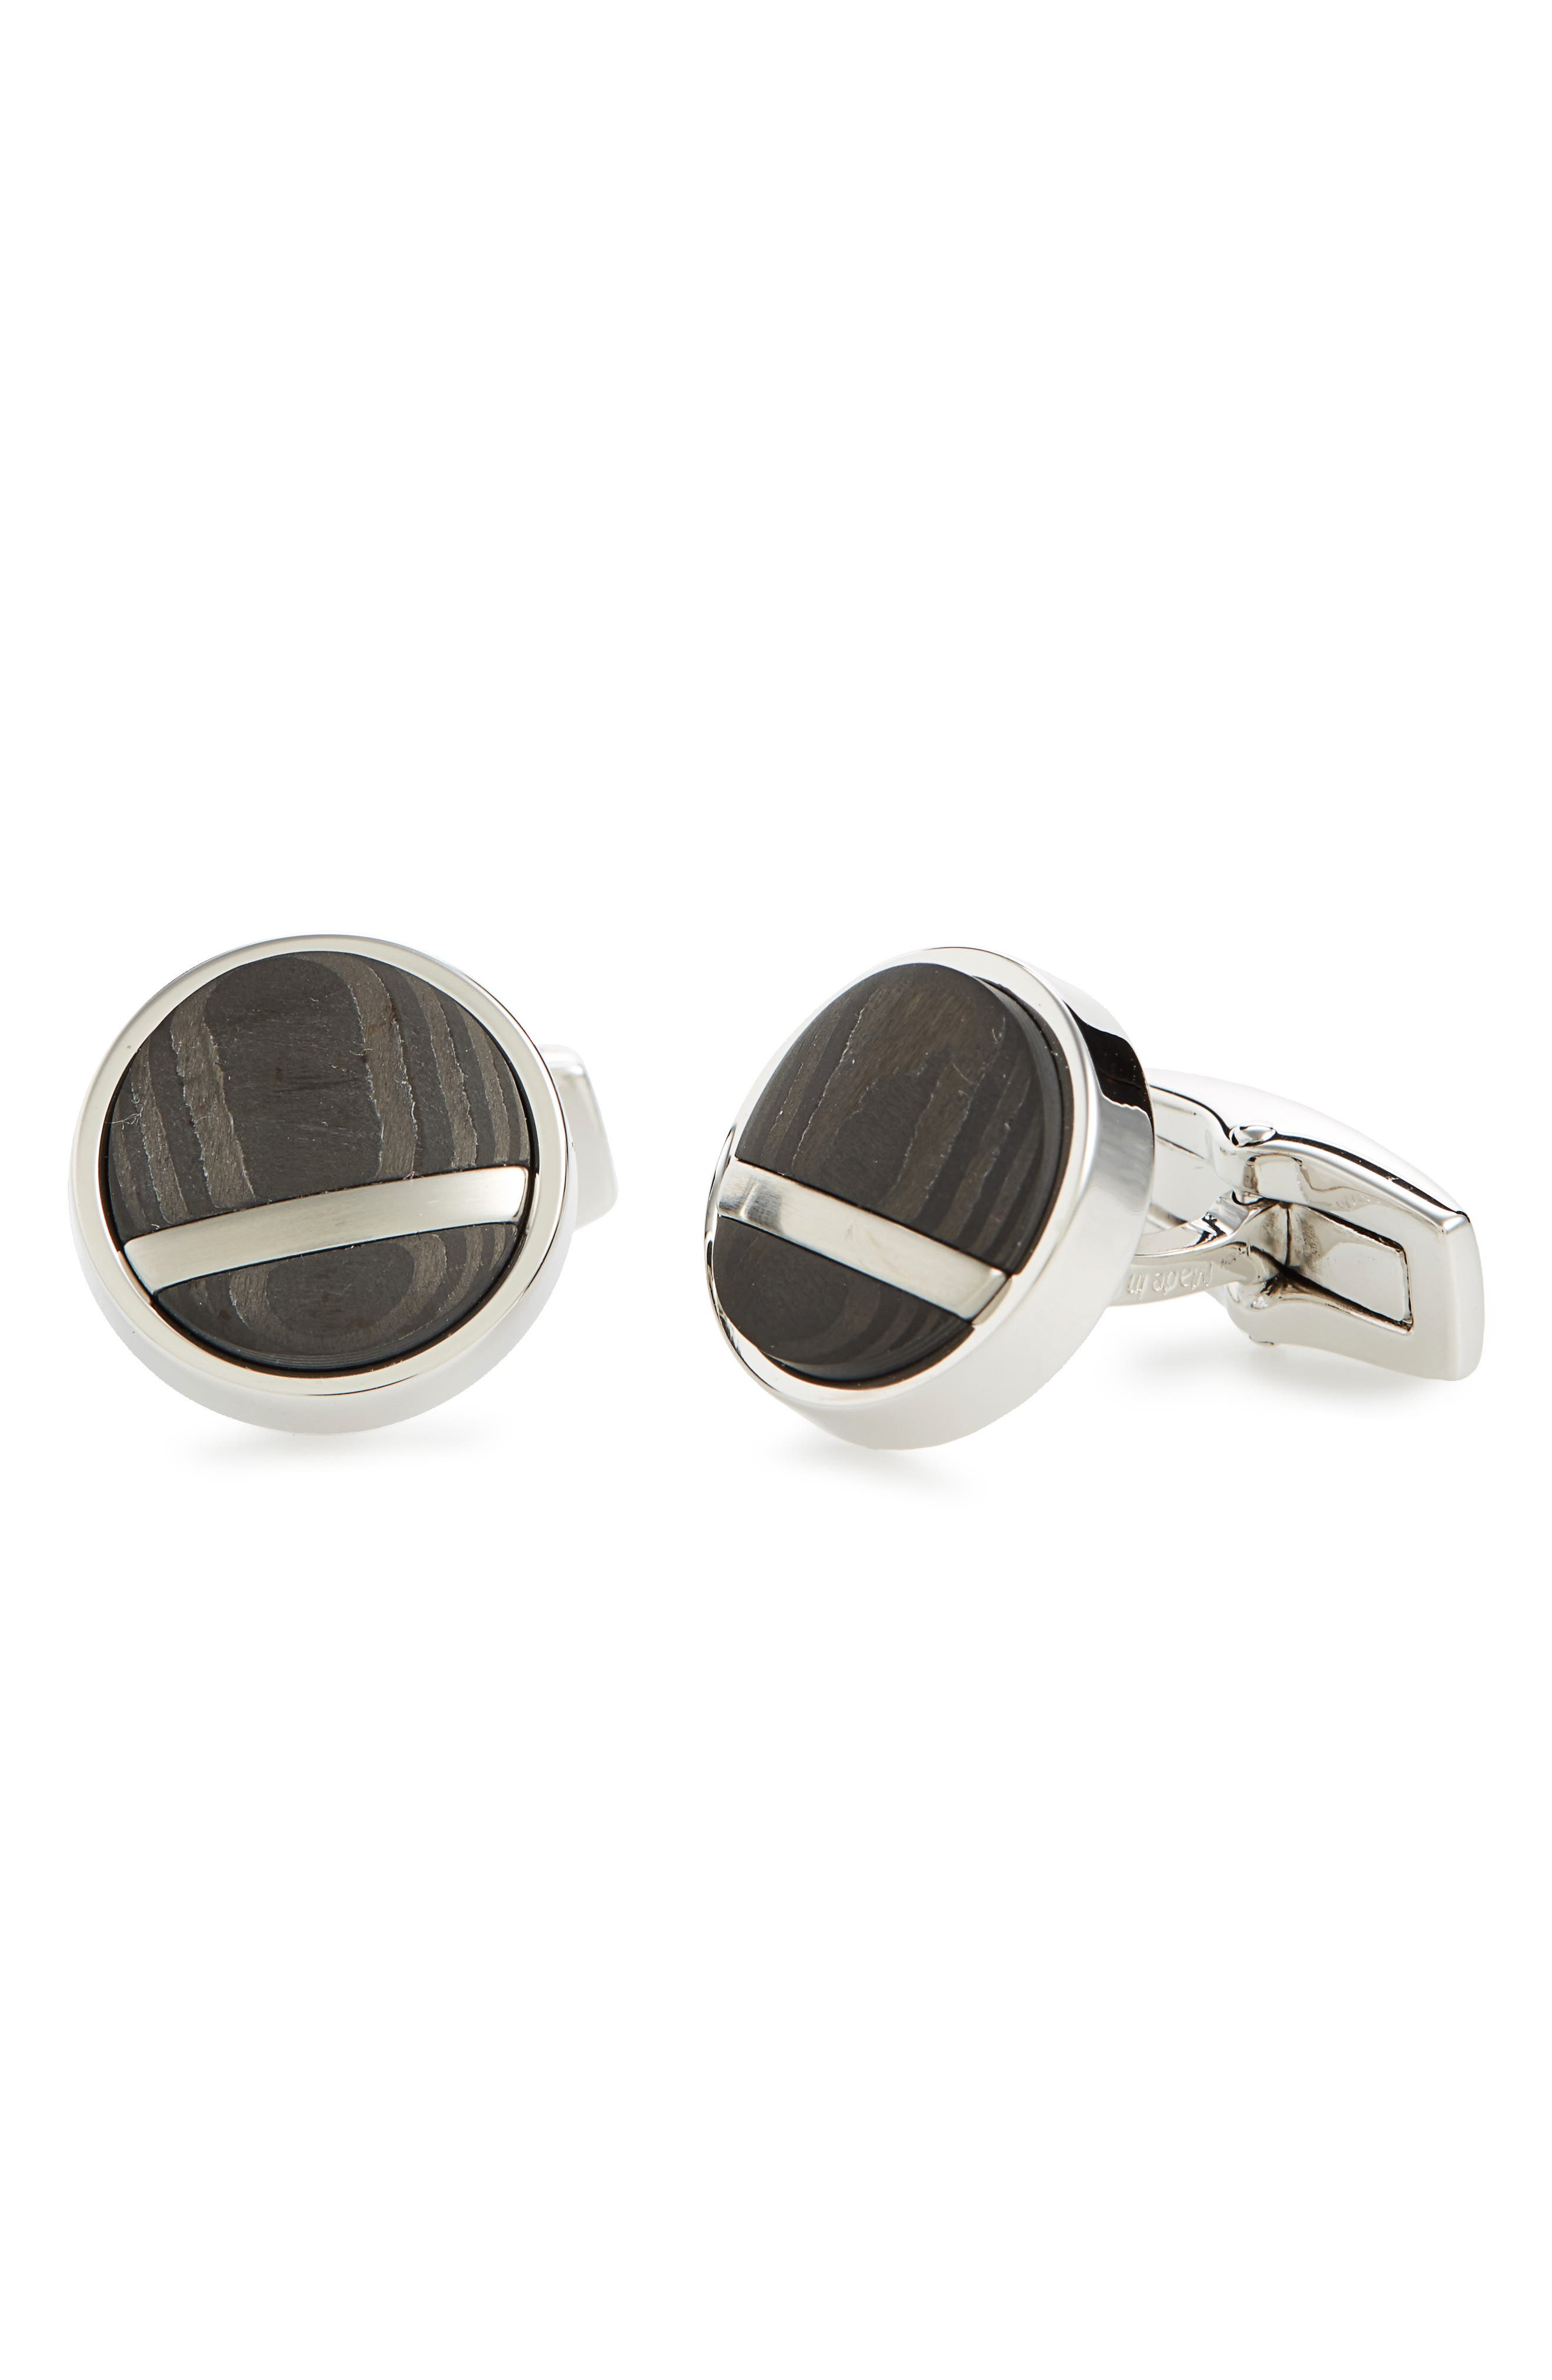 T-Ralph Round Cuff Links,                         Main,                         color, Grey